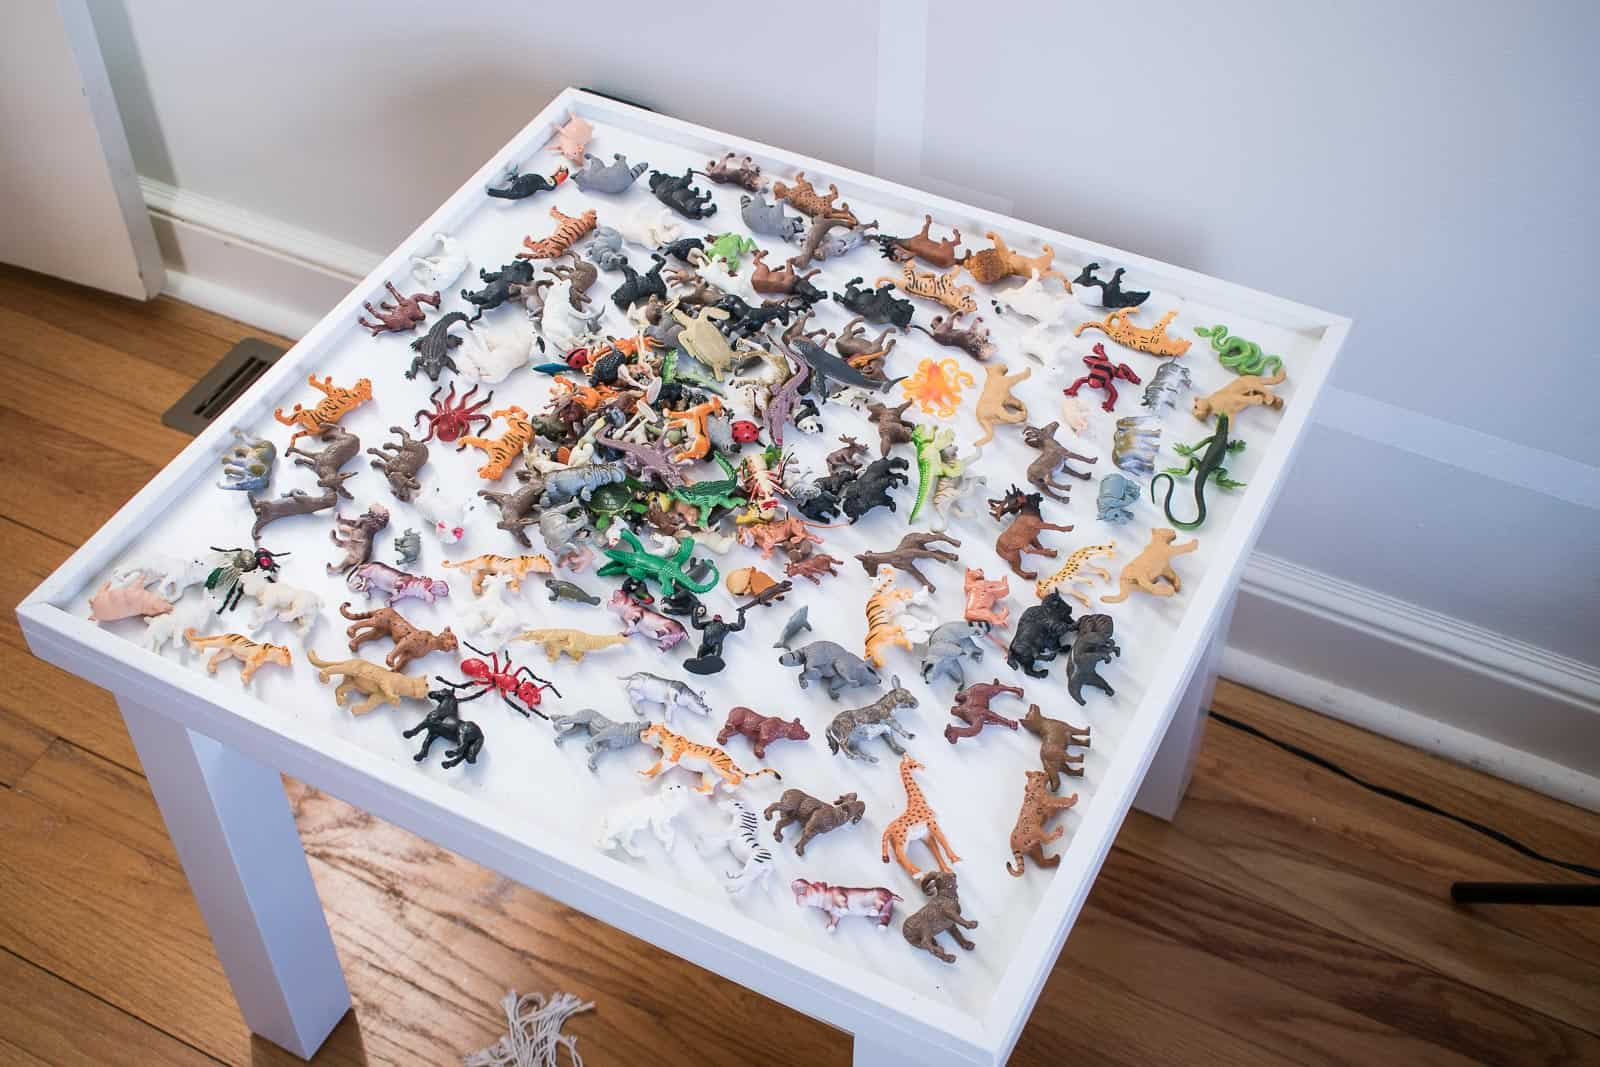 lay out animals on table top